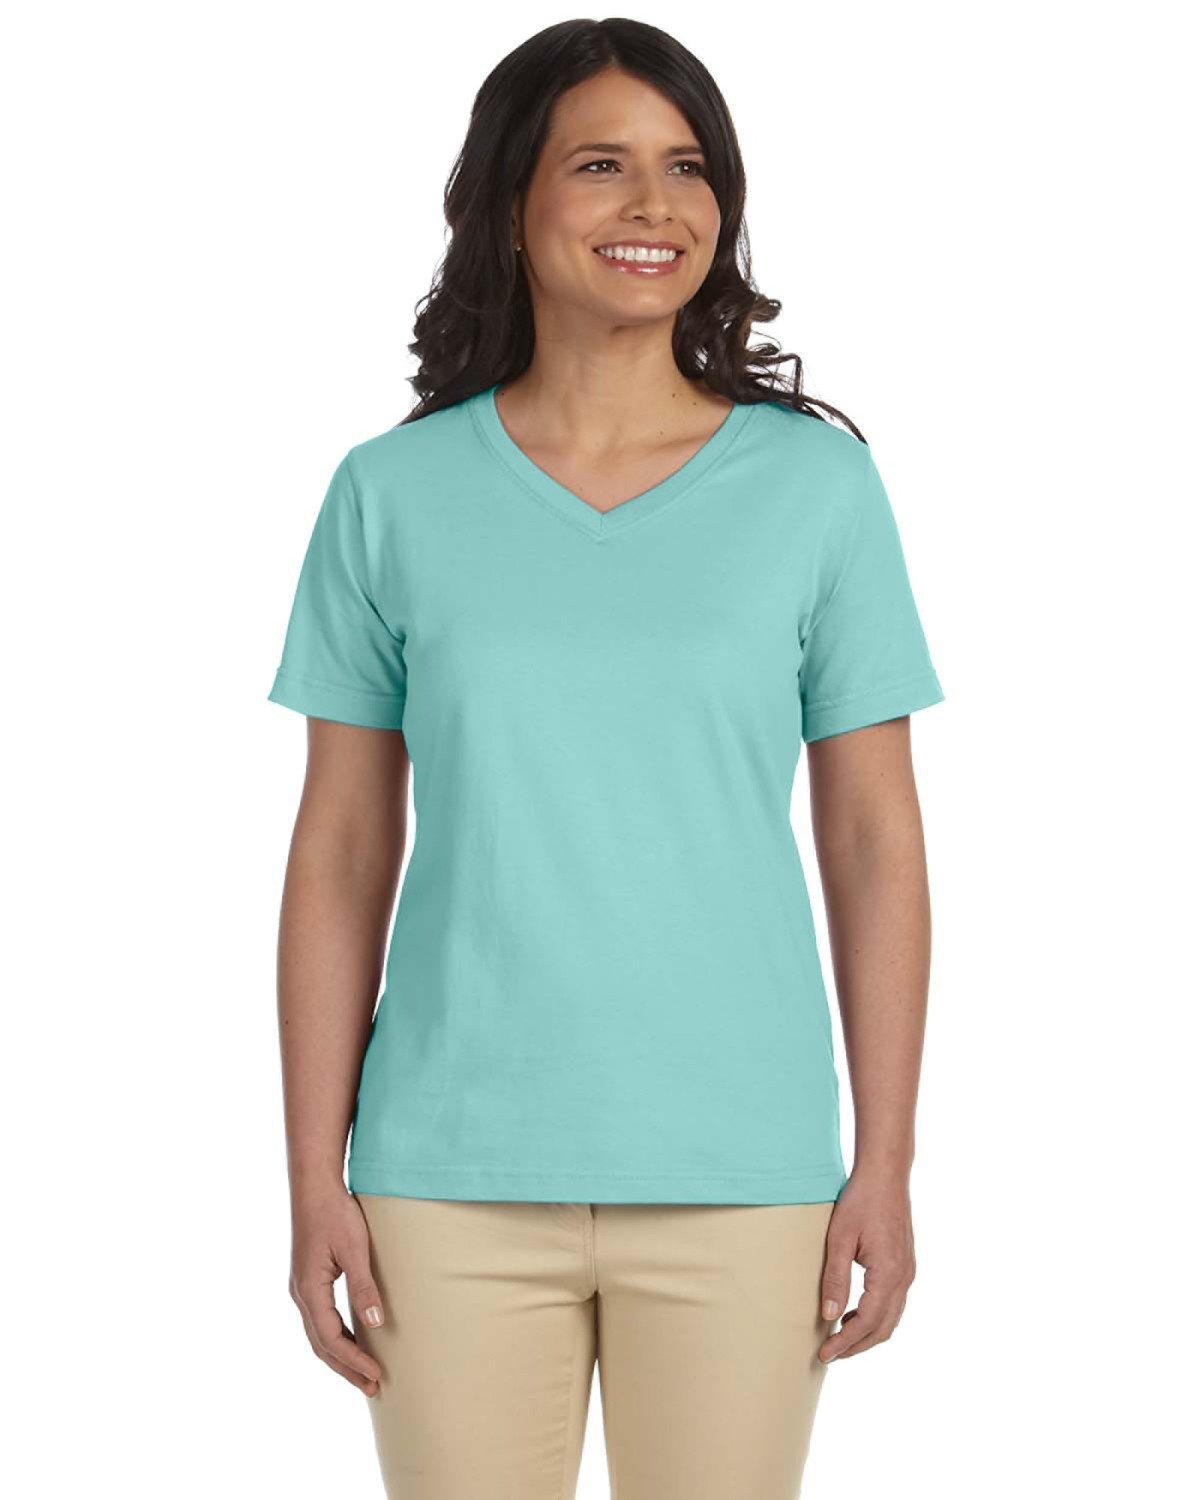 LAT Ladies' Premium Jersey V-Neck T-Shirt CHILL